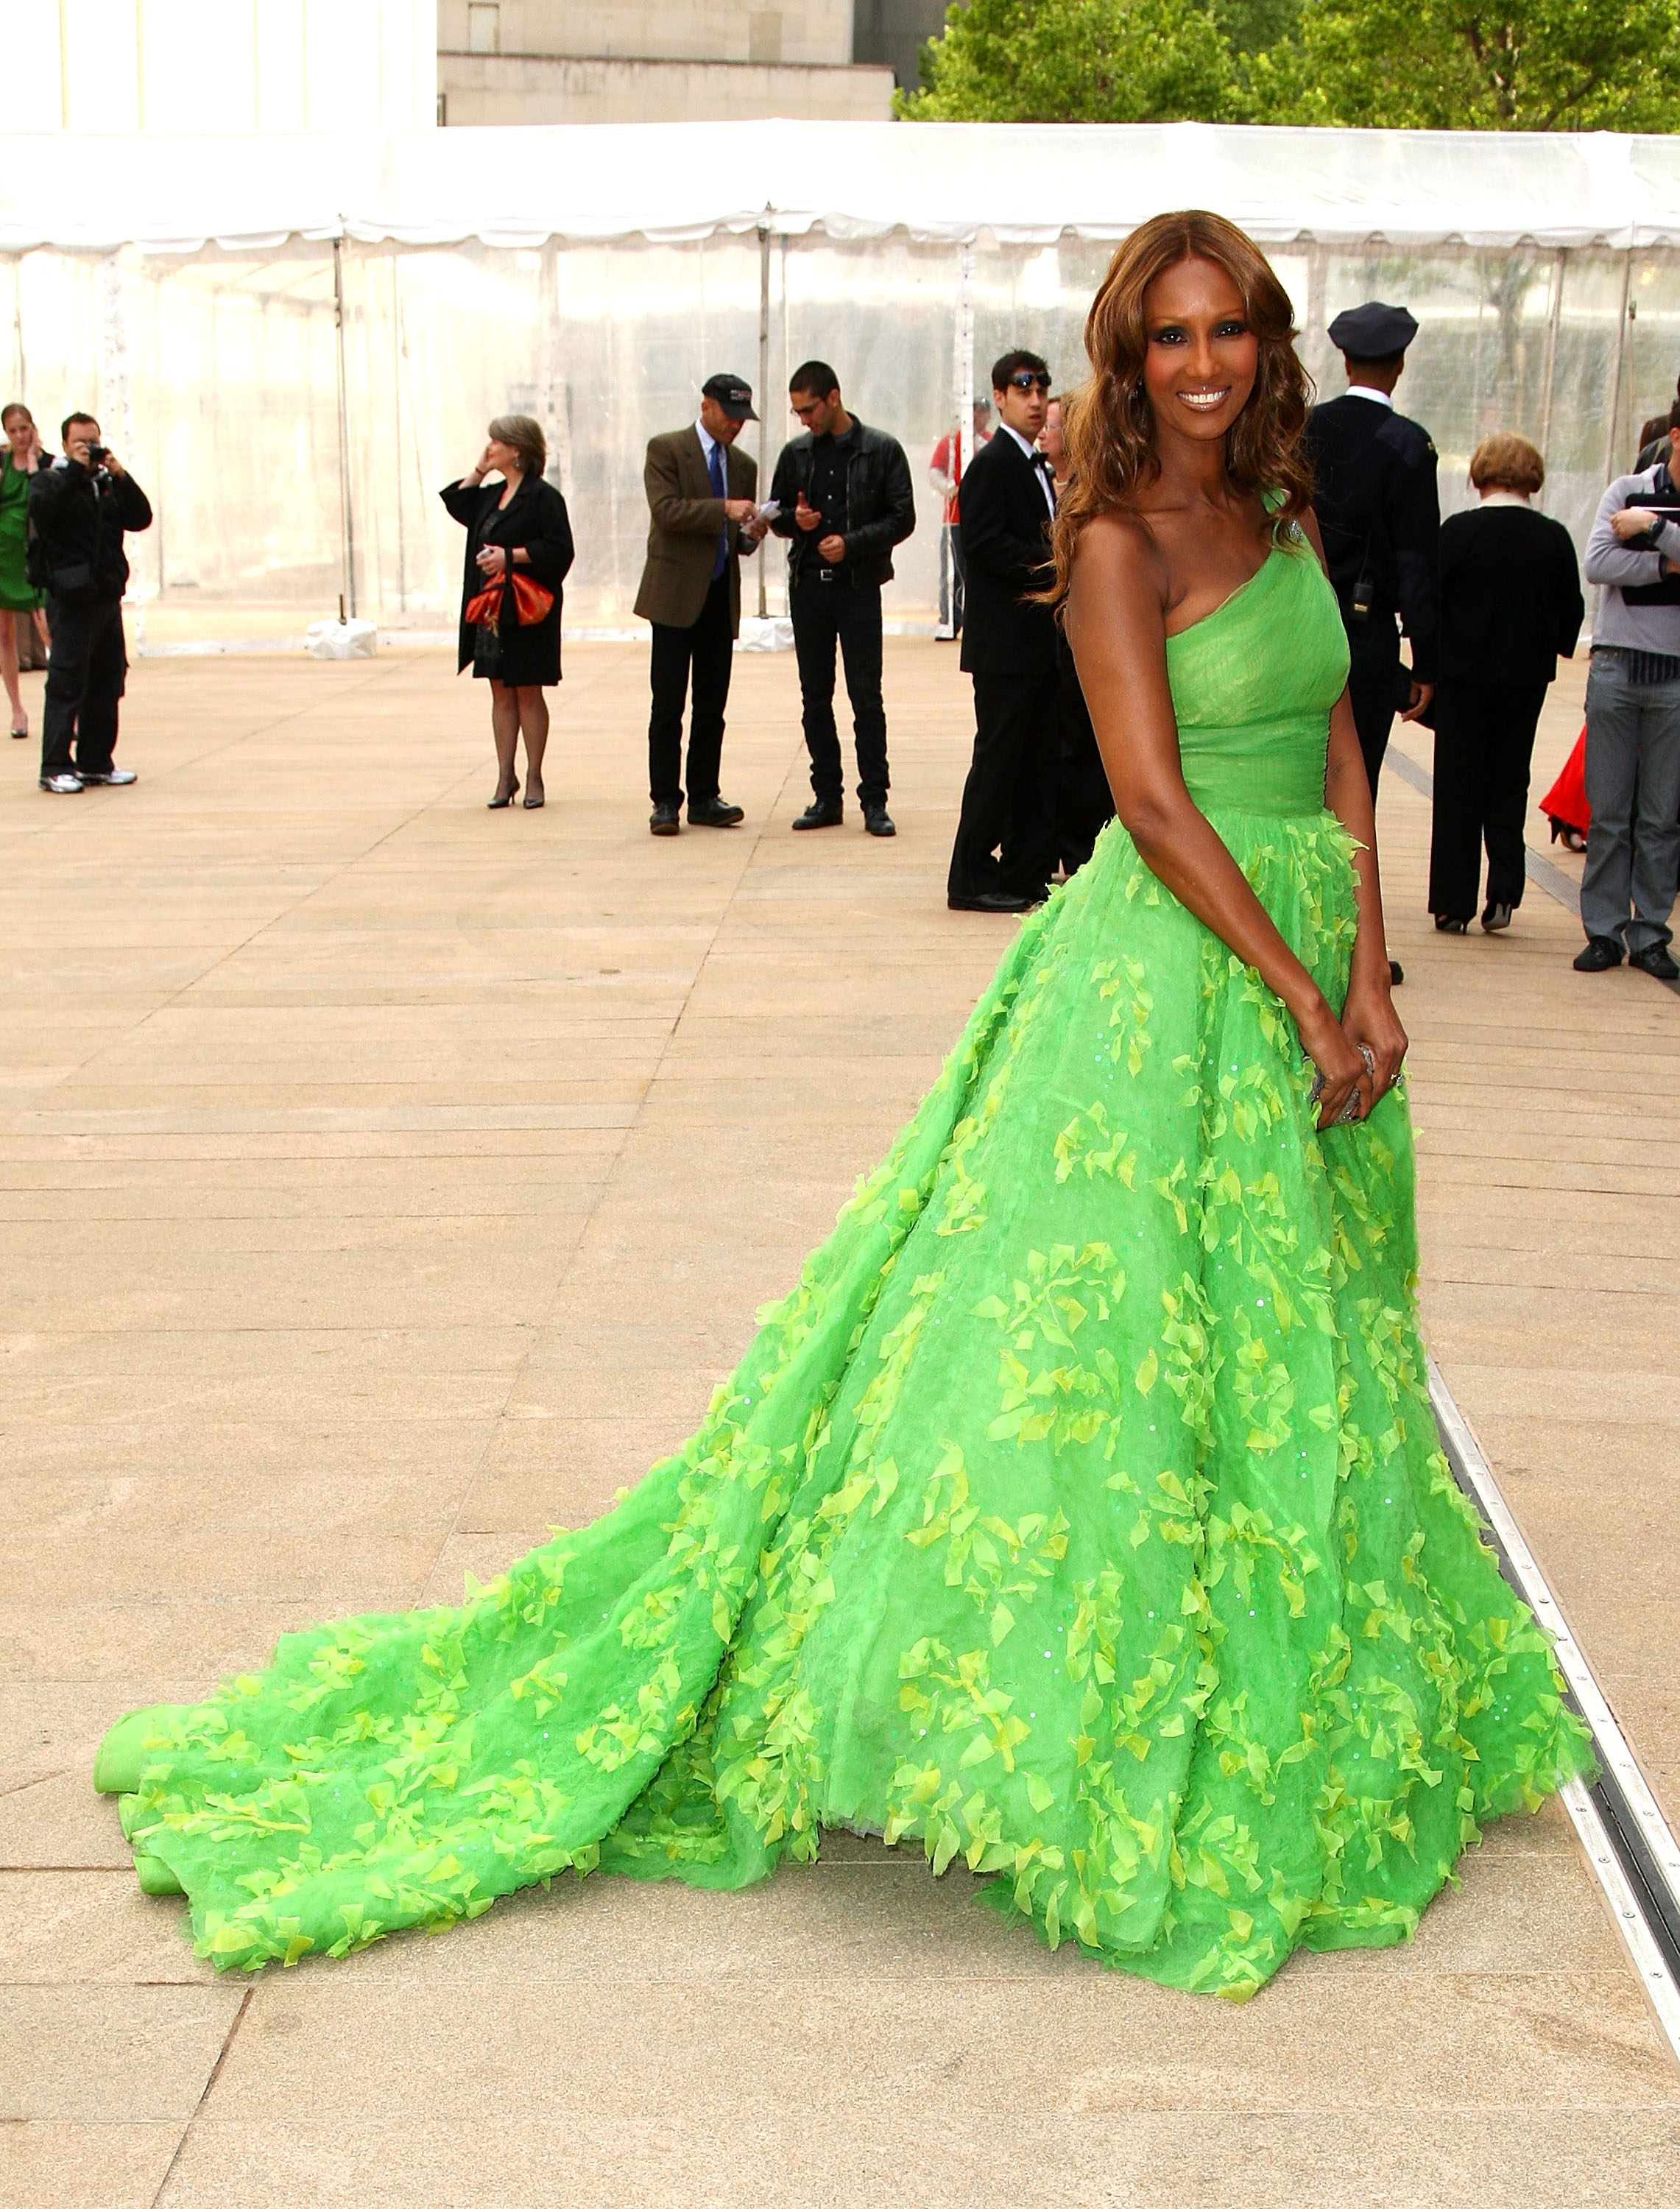 Model and entrepreneur Iman wearing a signature full skirt Oscar de la Renta gown at the 2009 American Ballet Theatre Gala / Photo Source: popsugar.com